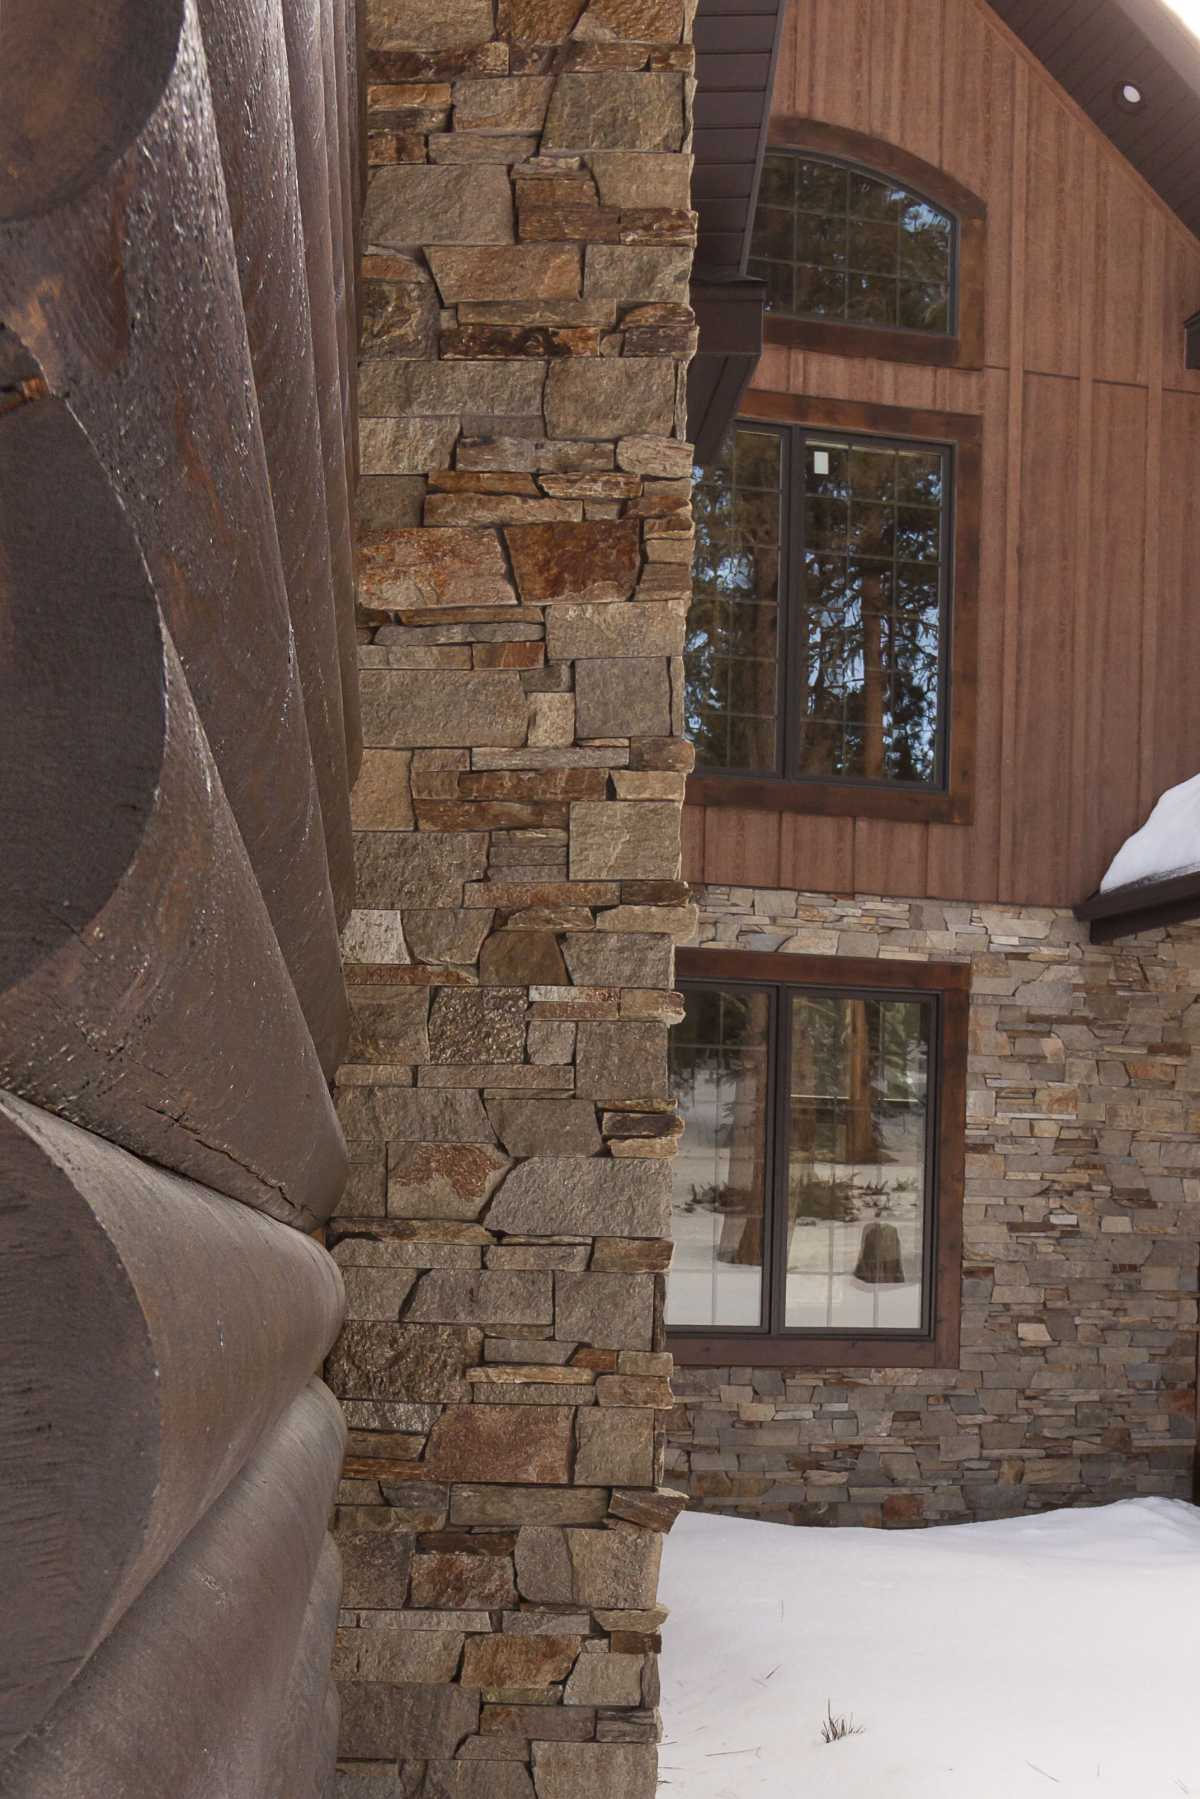 A close-up of the log and stone exterior pieces.